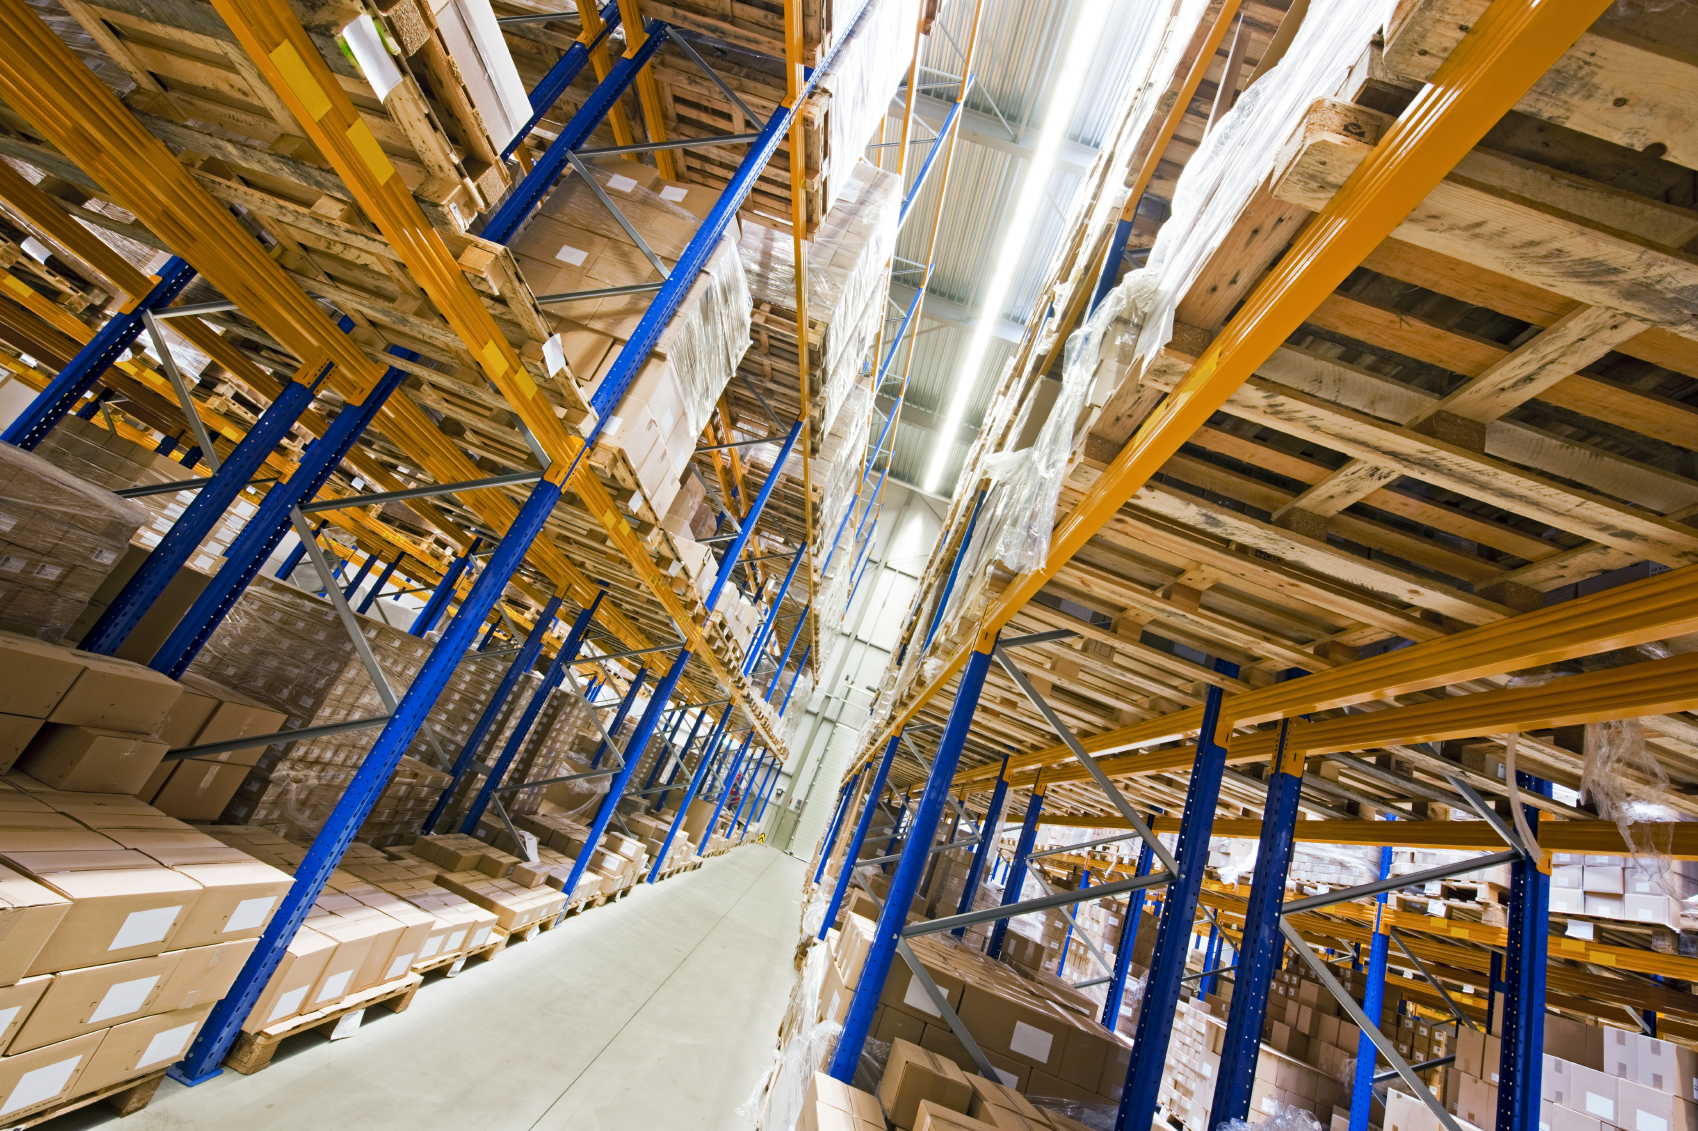 material handling and warehousing management walmart Walmart management jobs  job function warehousing  you could find yourself performing a number of different roles related to material handling such as packing .